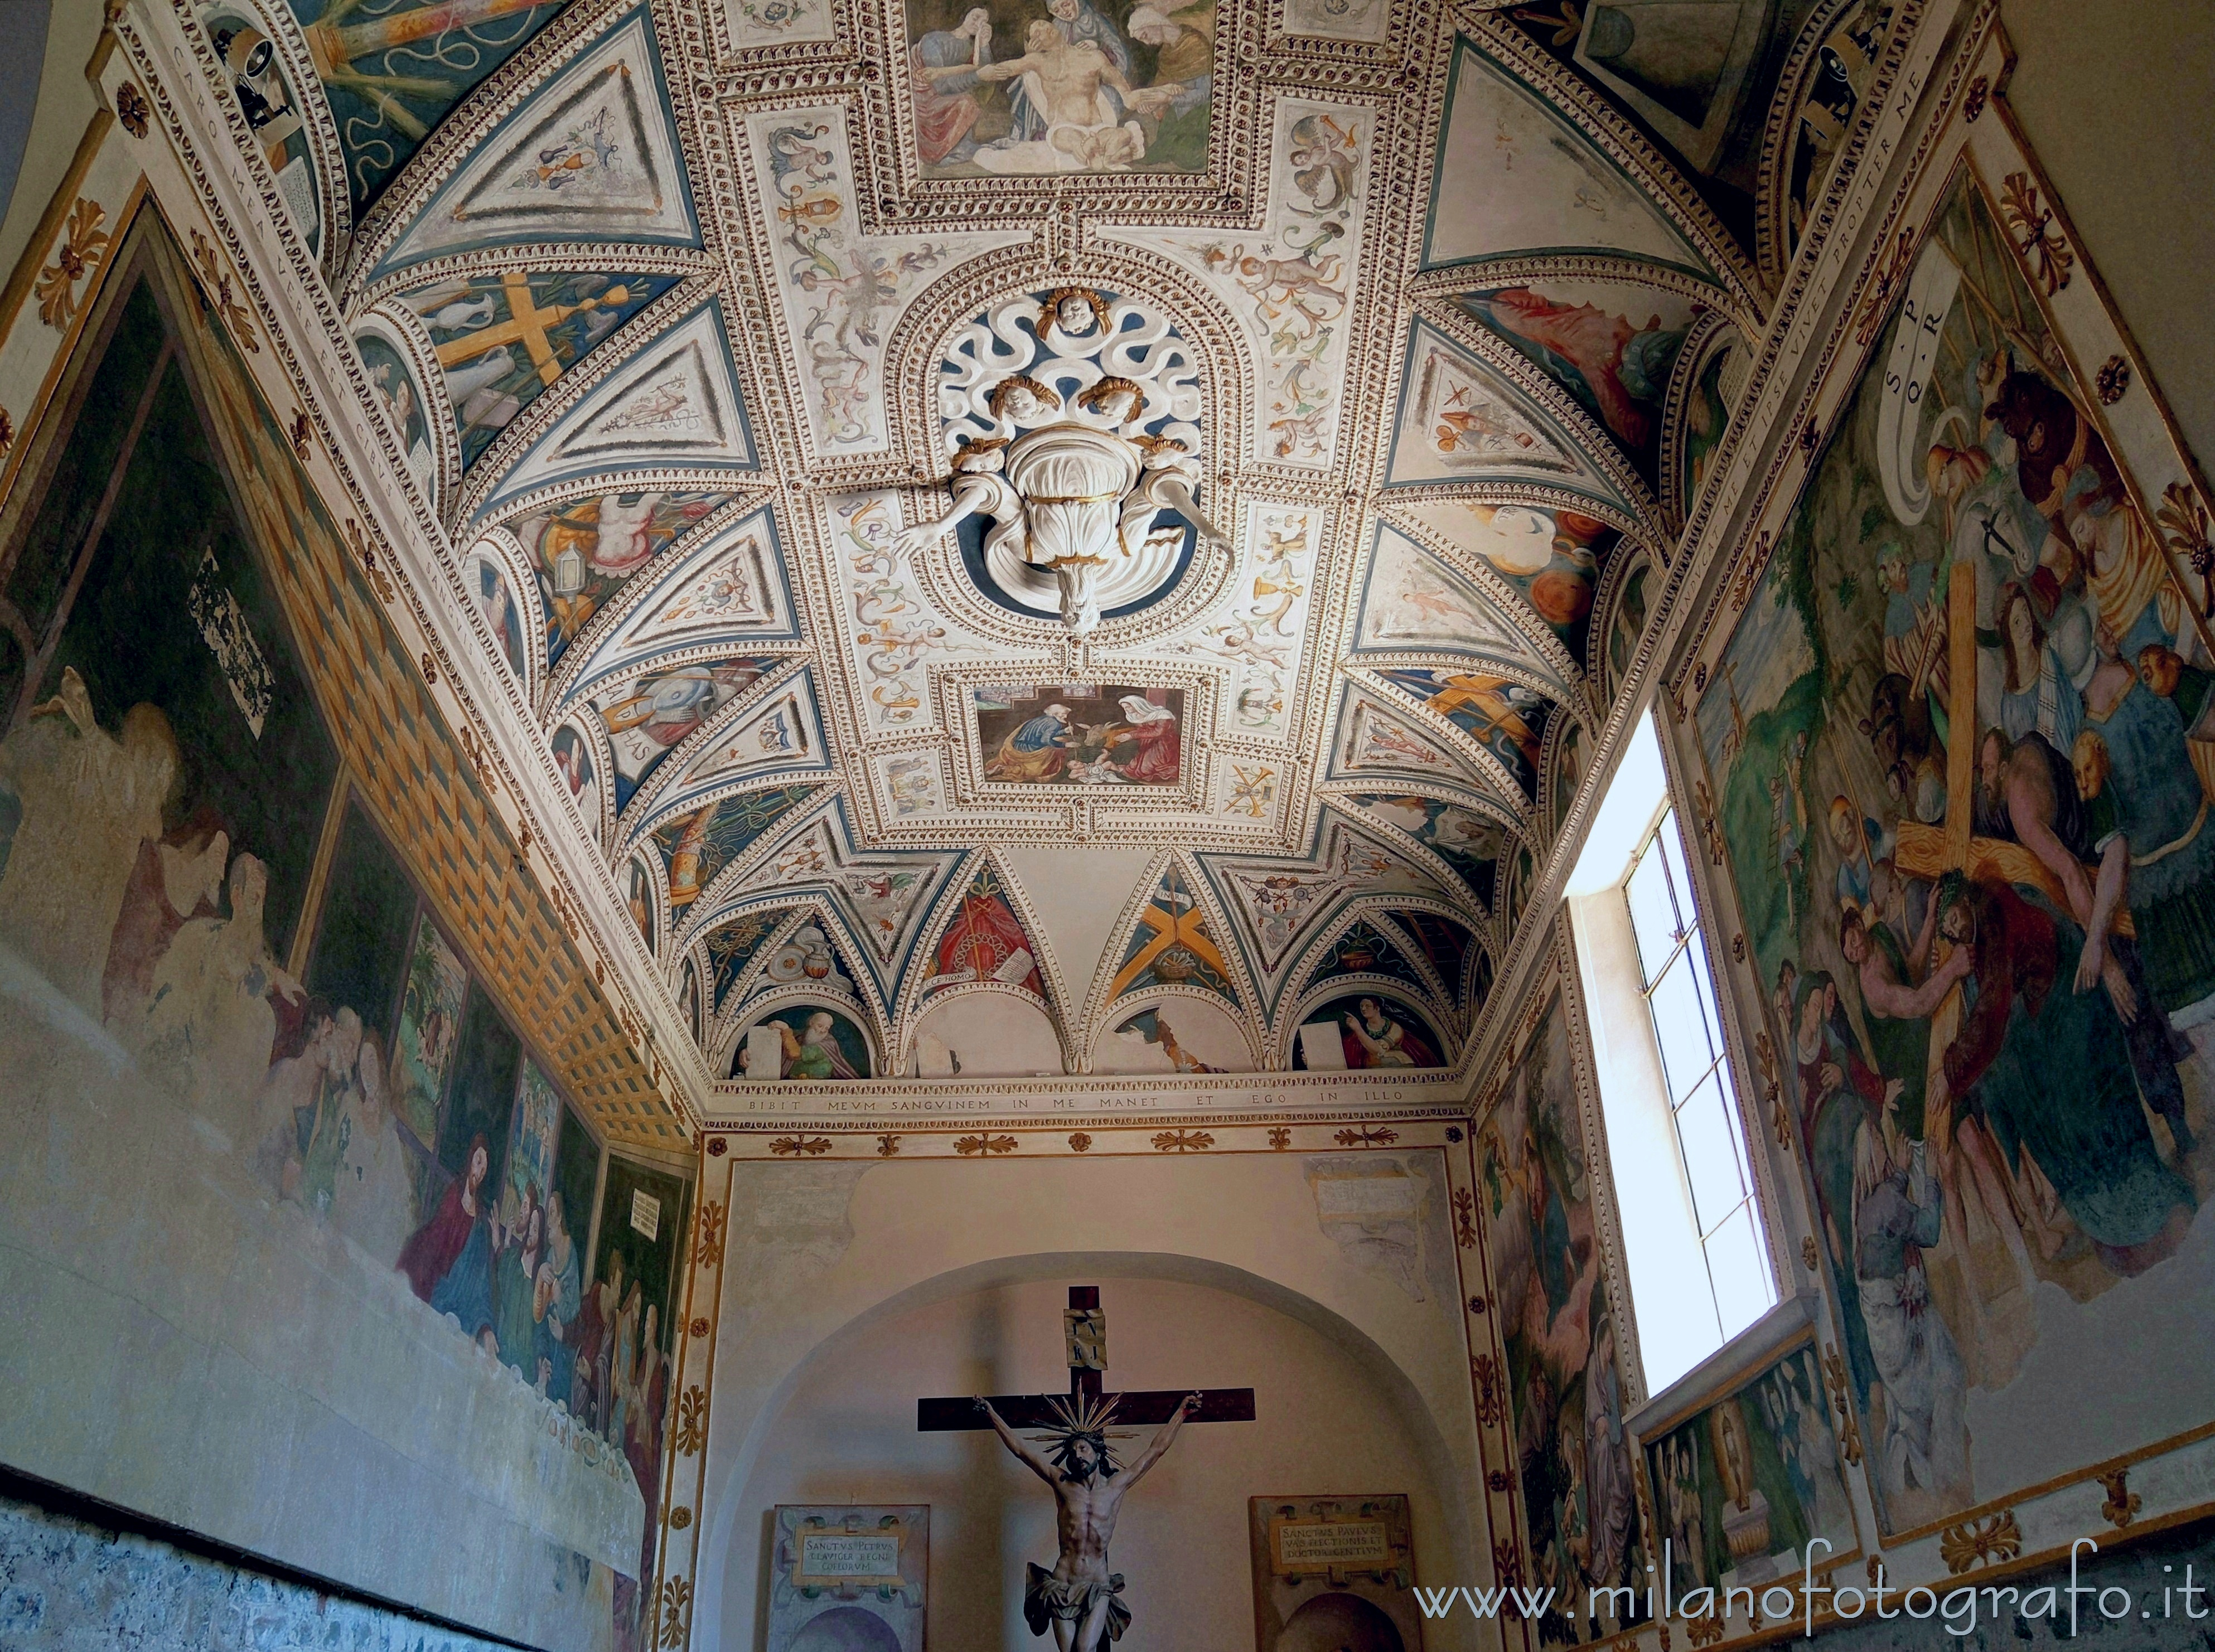 Sesto Calende (Varese, Italy): Right apse of the Abbey of San Donato - Sesto Calende (Varese, Italy)